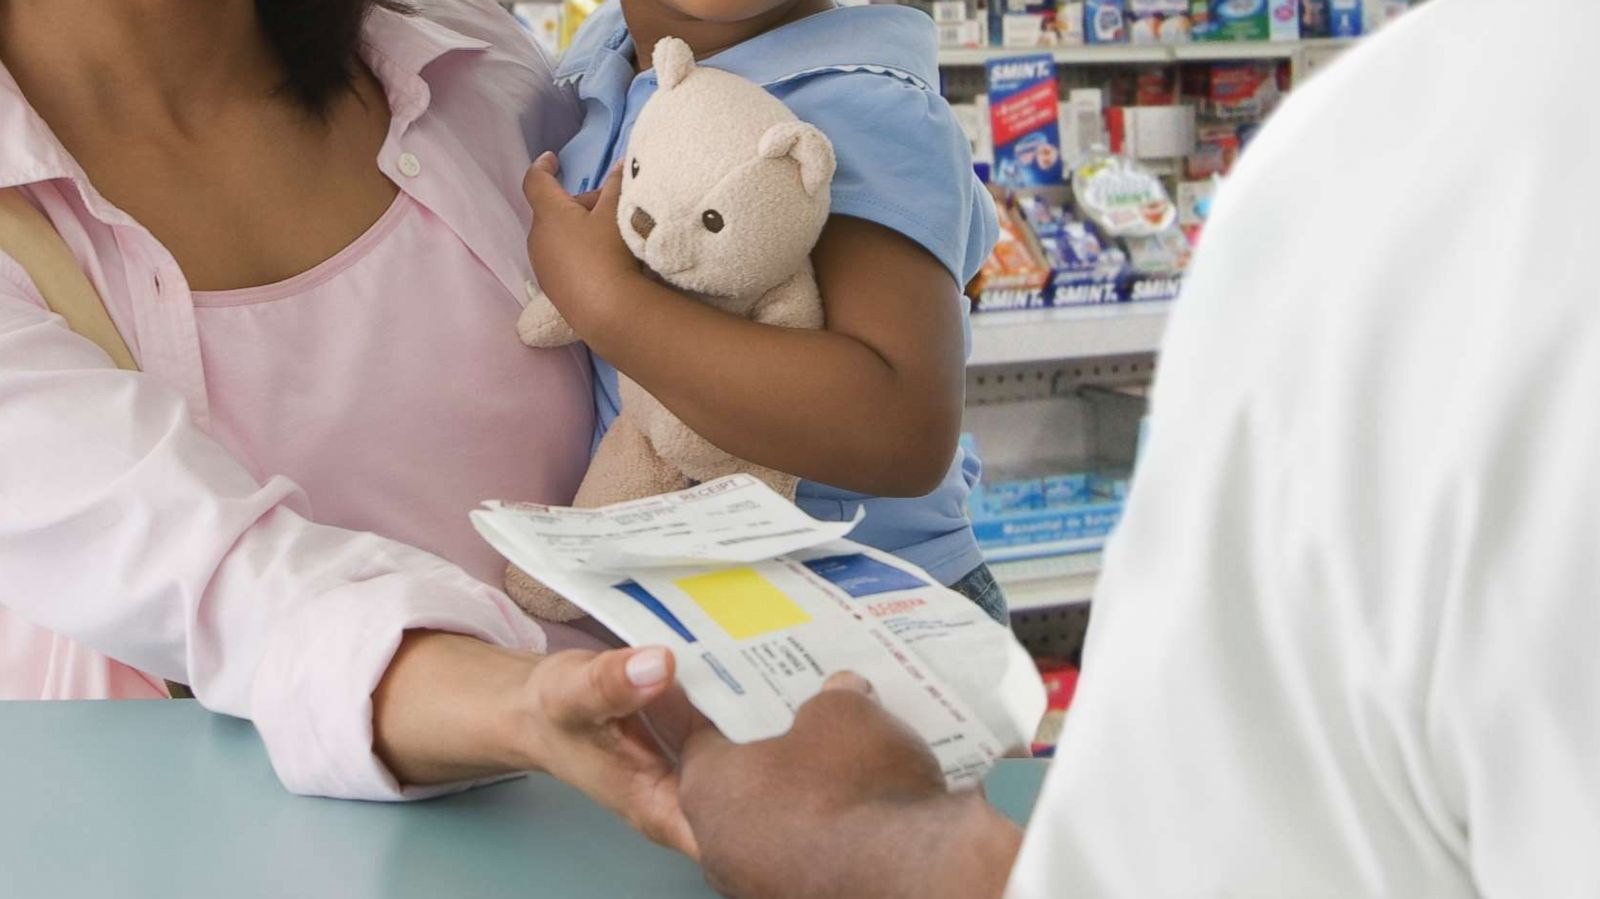 How to take care of a child's health without medication